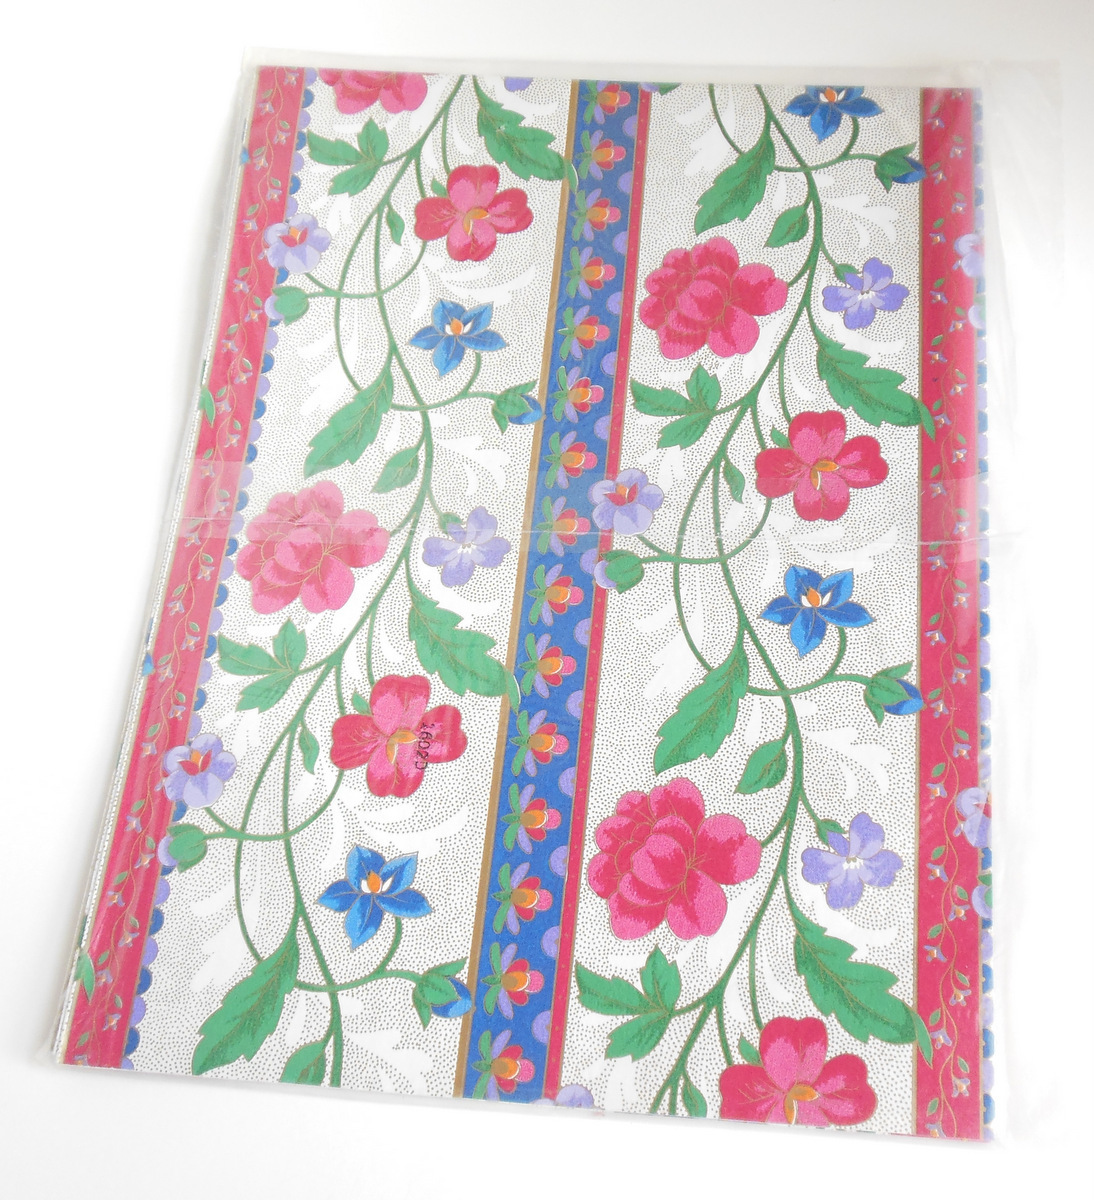 Vintage Forget Me Not American Greetings Sheet Gift Wrapping Paper Floral Pink - $8.95